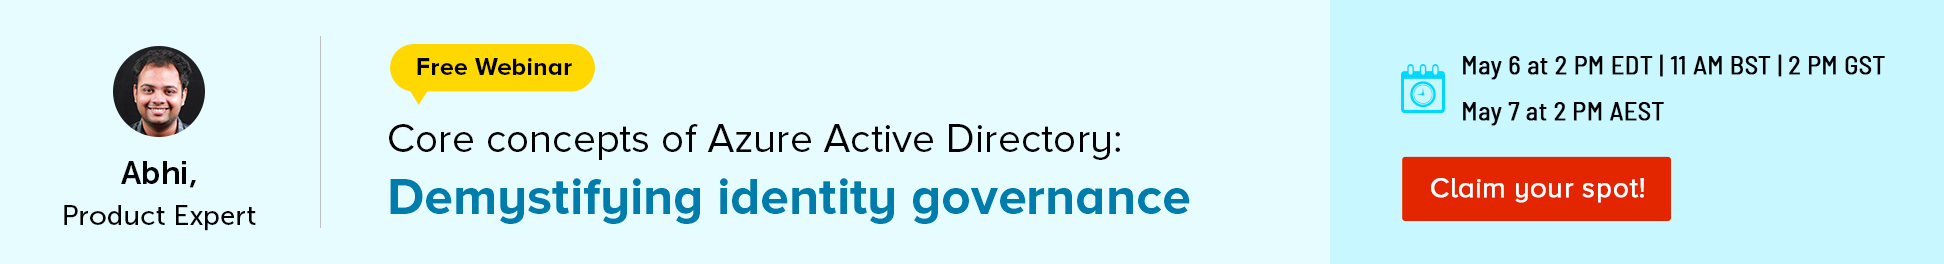 powershell based attacks in hybrid active directory